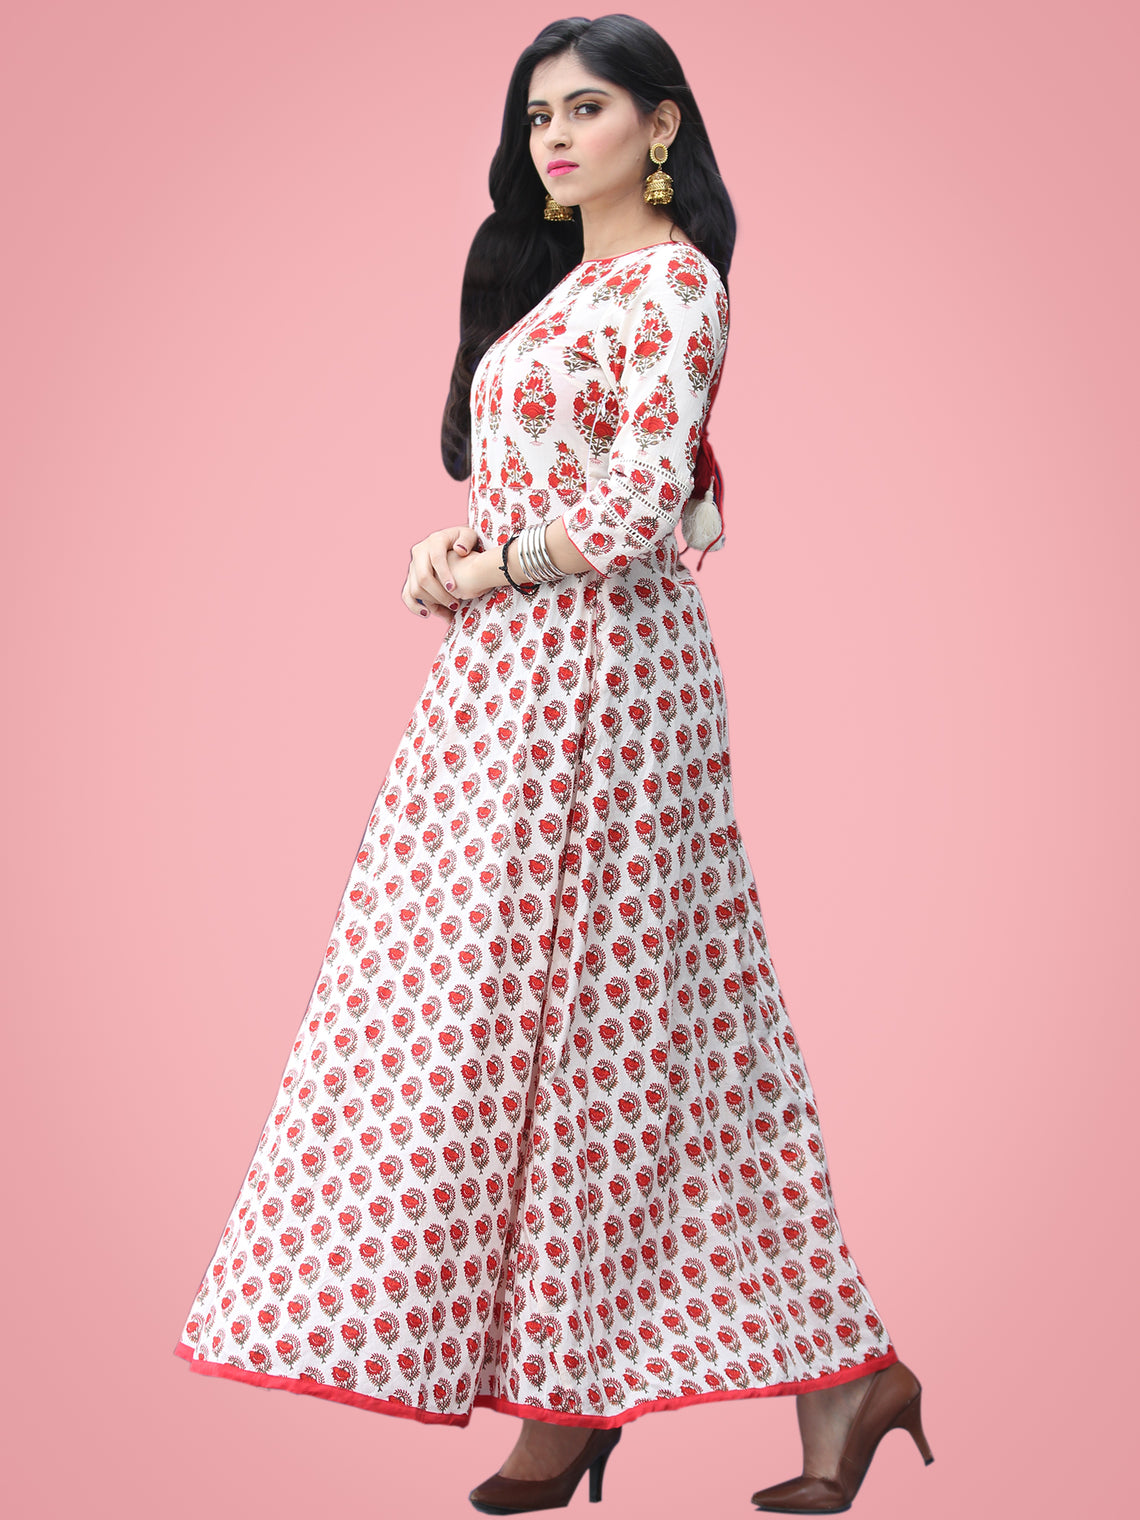 Nusrat - Ivory Red Green Block Printed Urave Cut Long Dress With Tie Up Deep Back - D404F2016